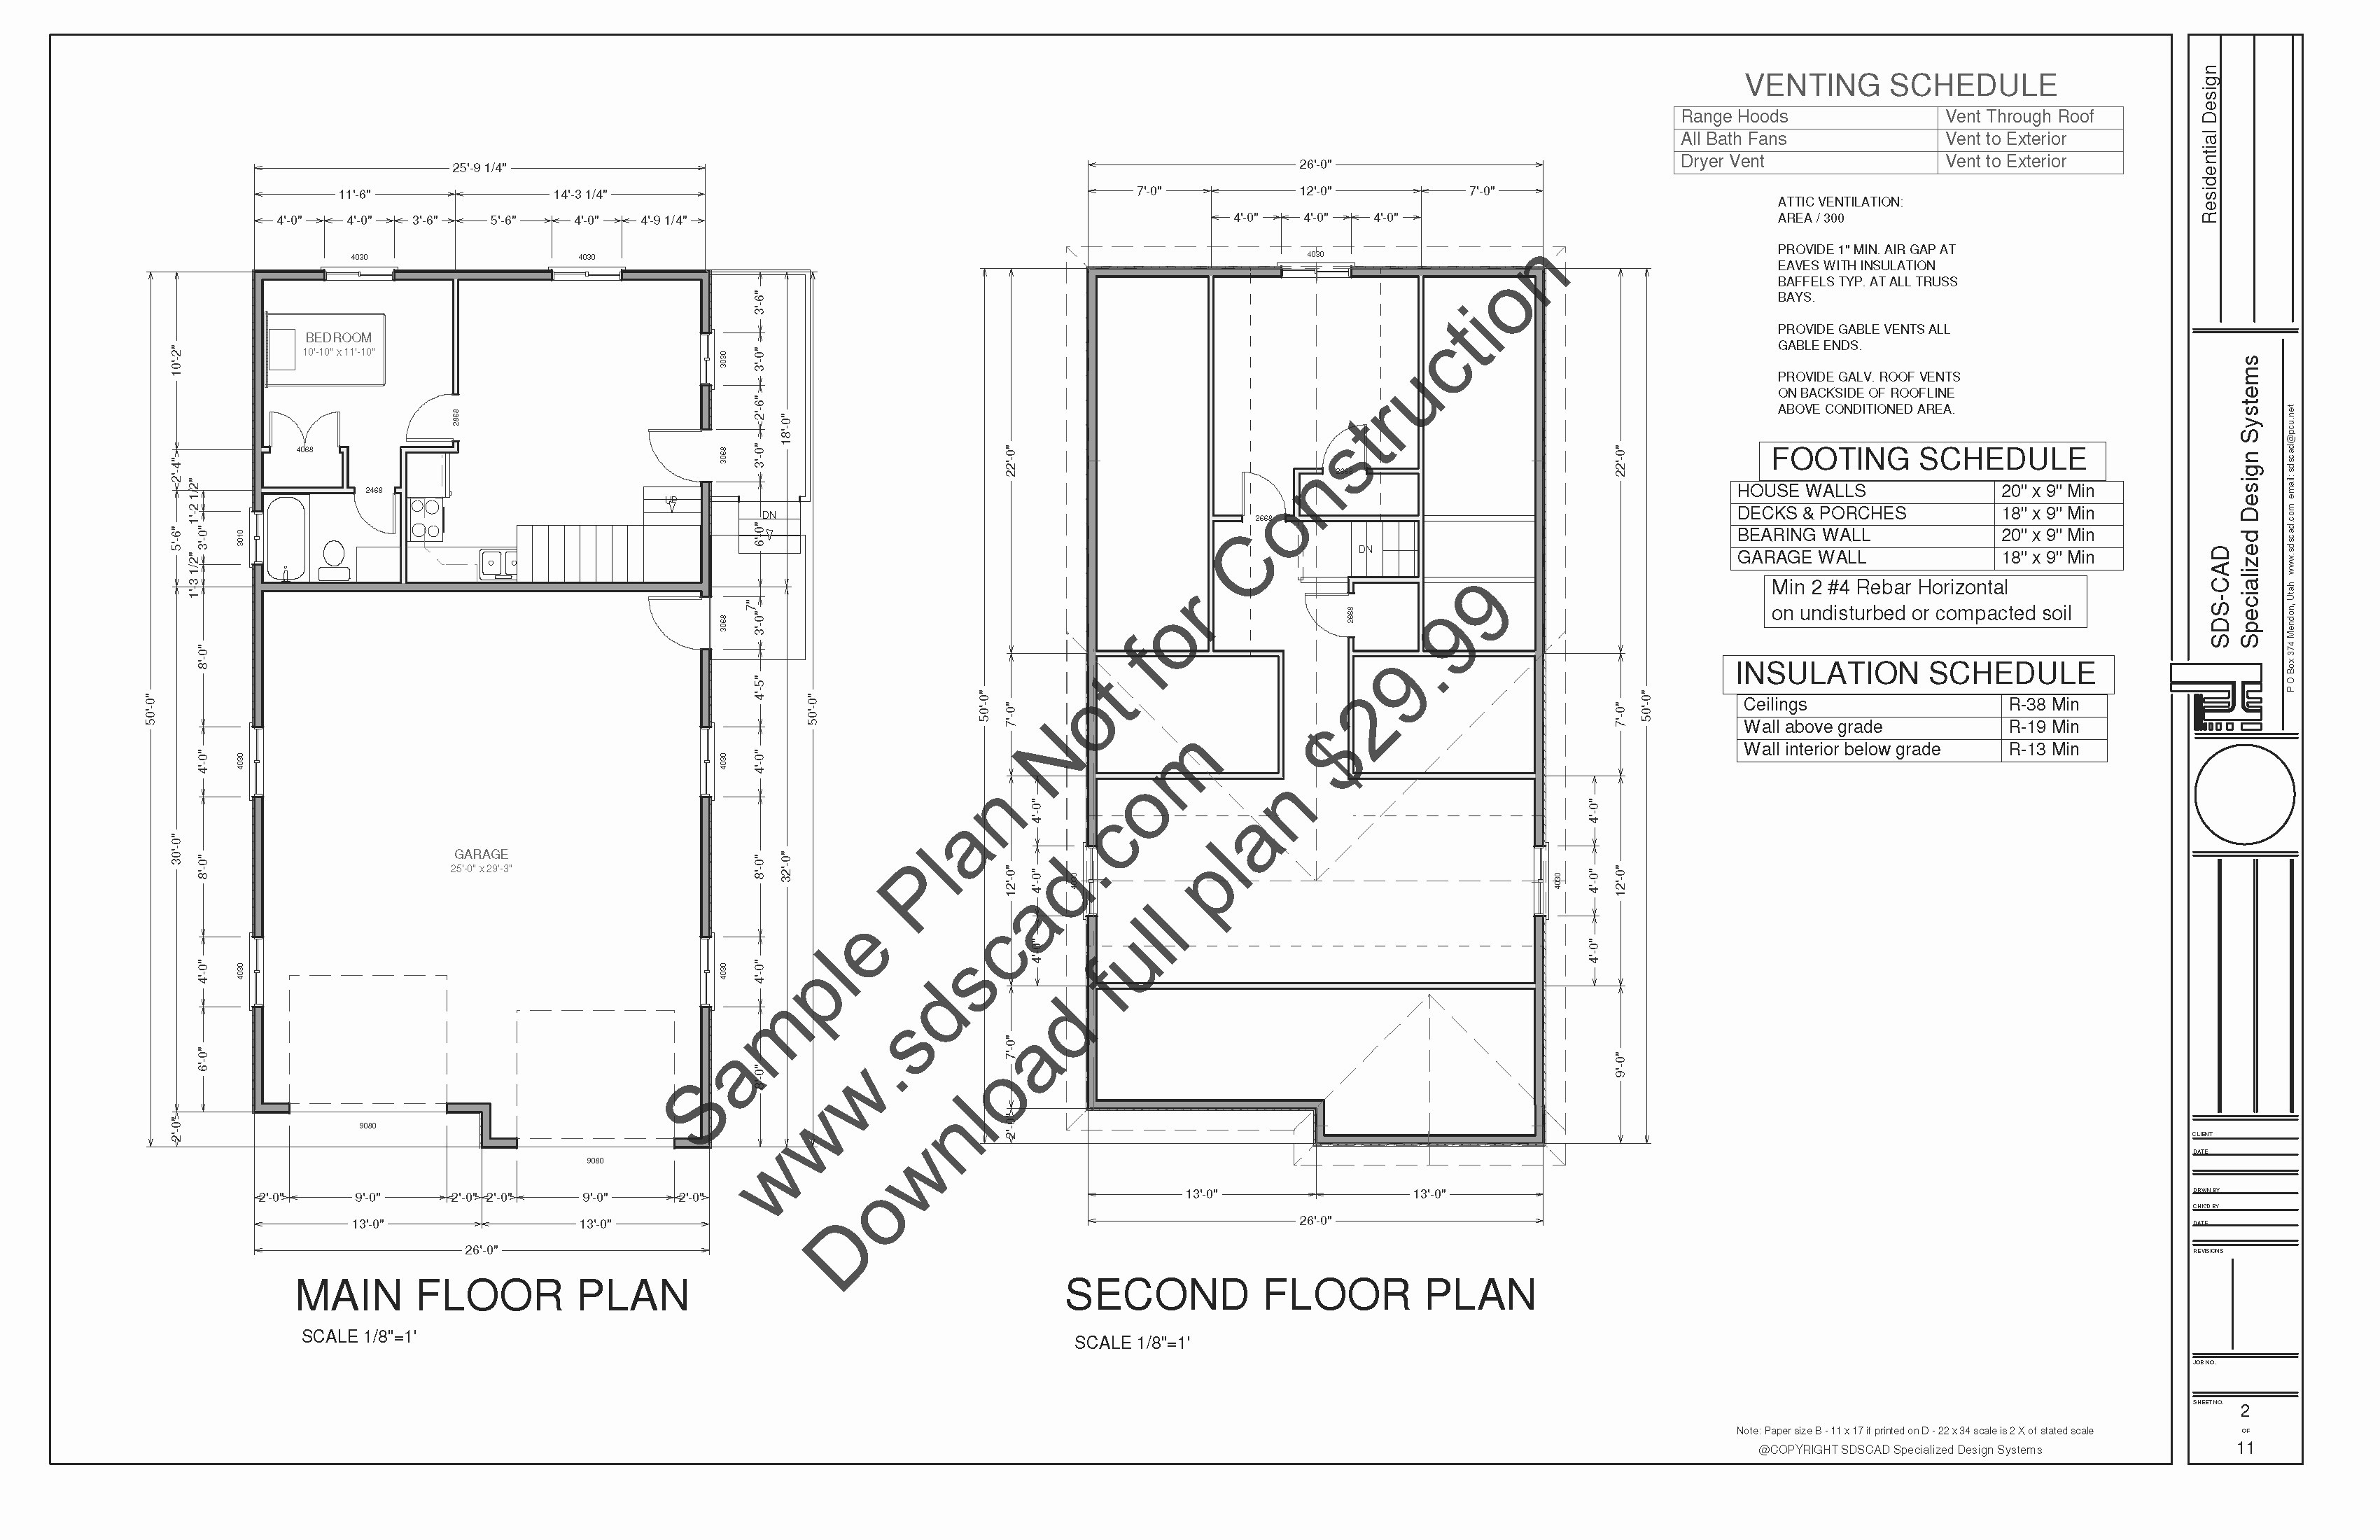 hardwood floor installation estimate calculator of house plan cost calculator beautiful flat roof garage plans with regard to house plan cost calculator lovely garage floor plans